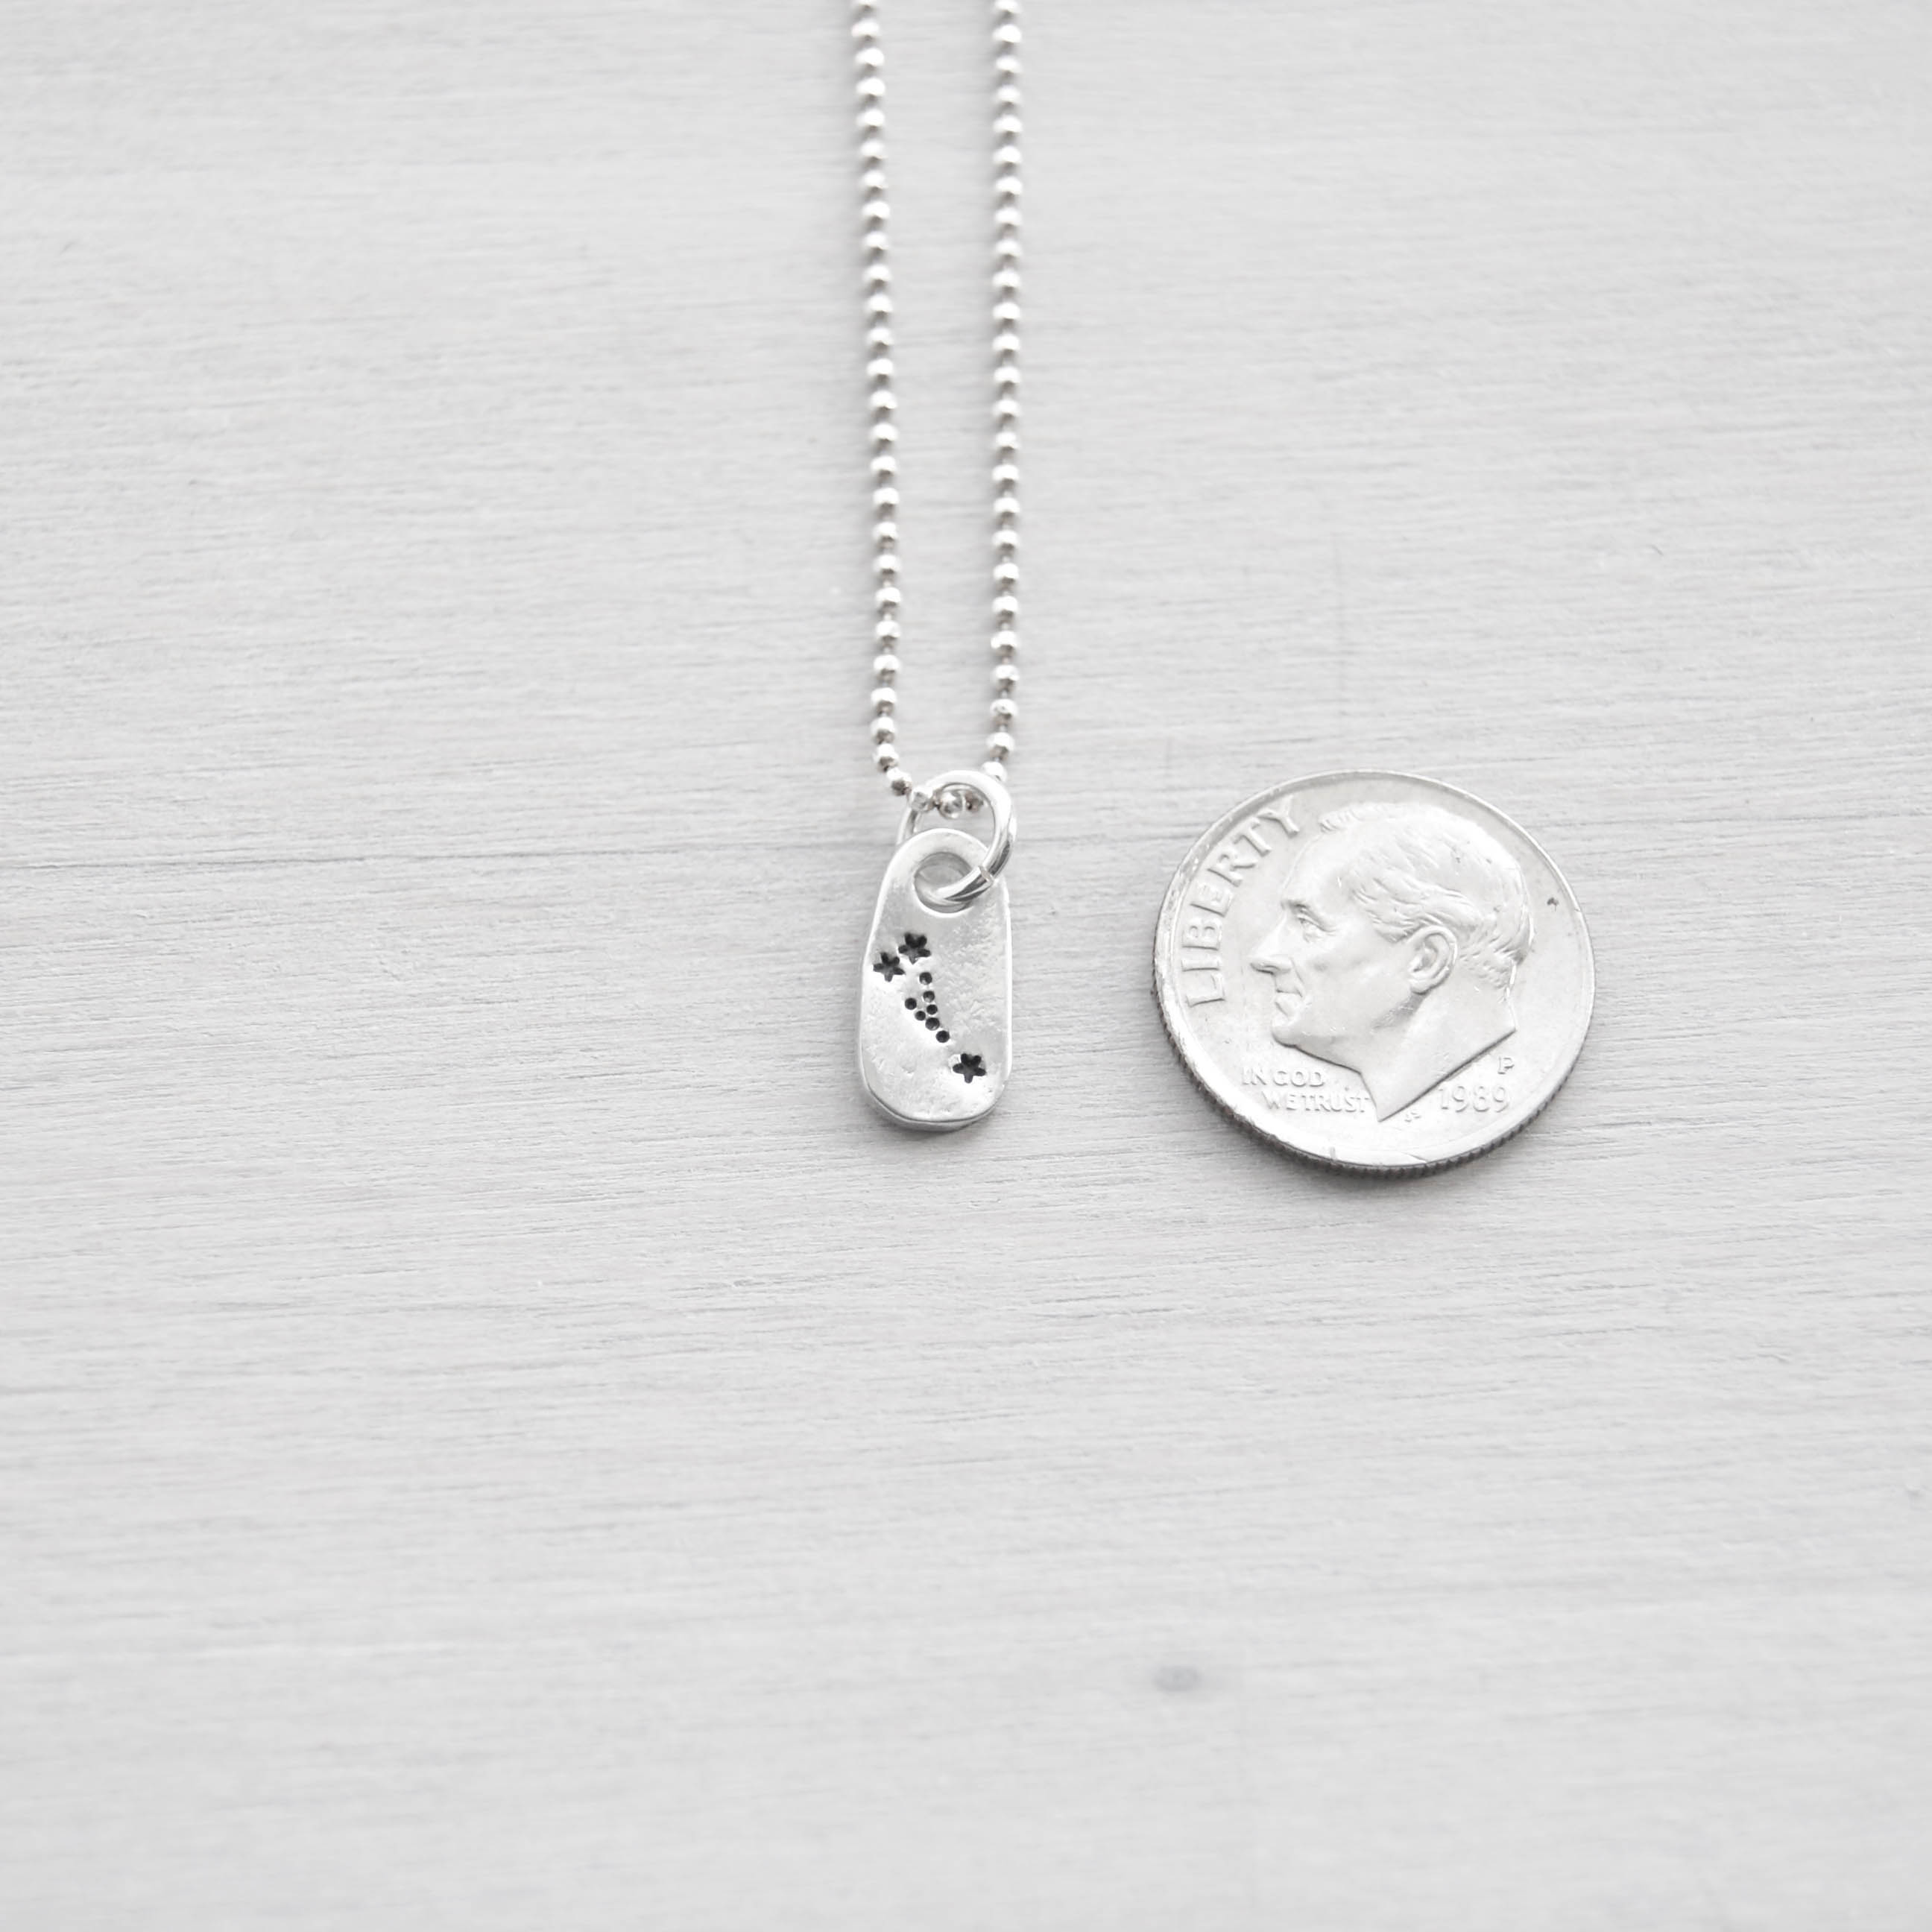 Taurus Constellation Zodiac Necklace